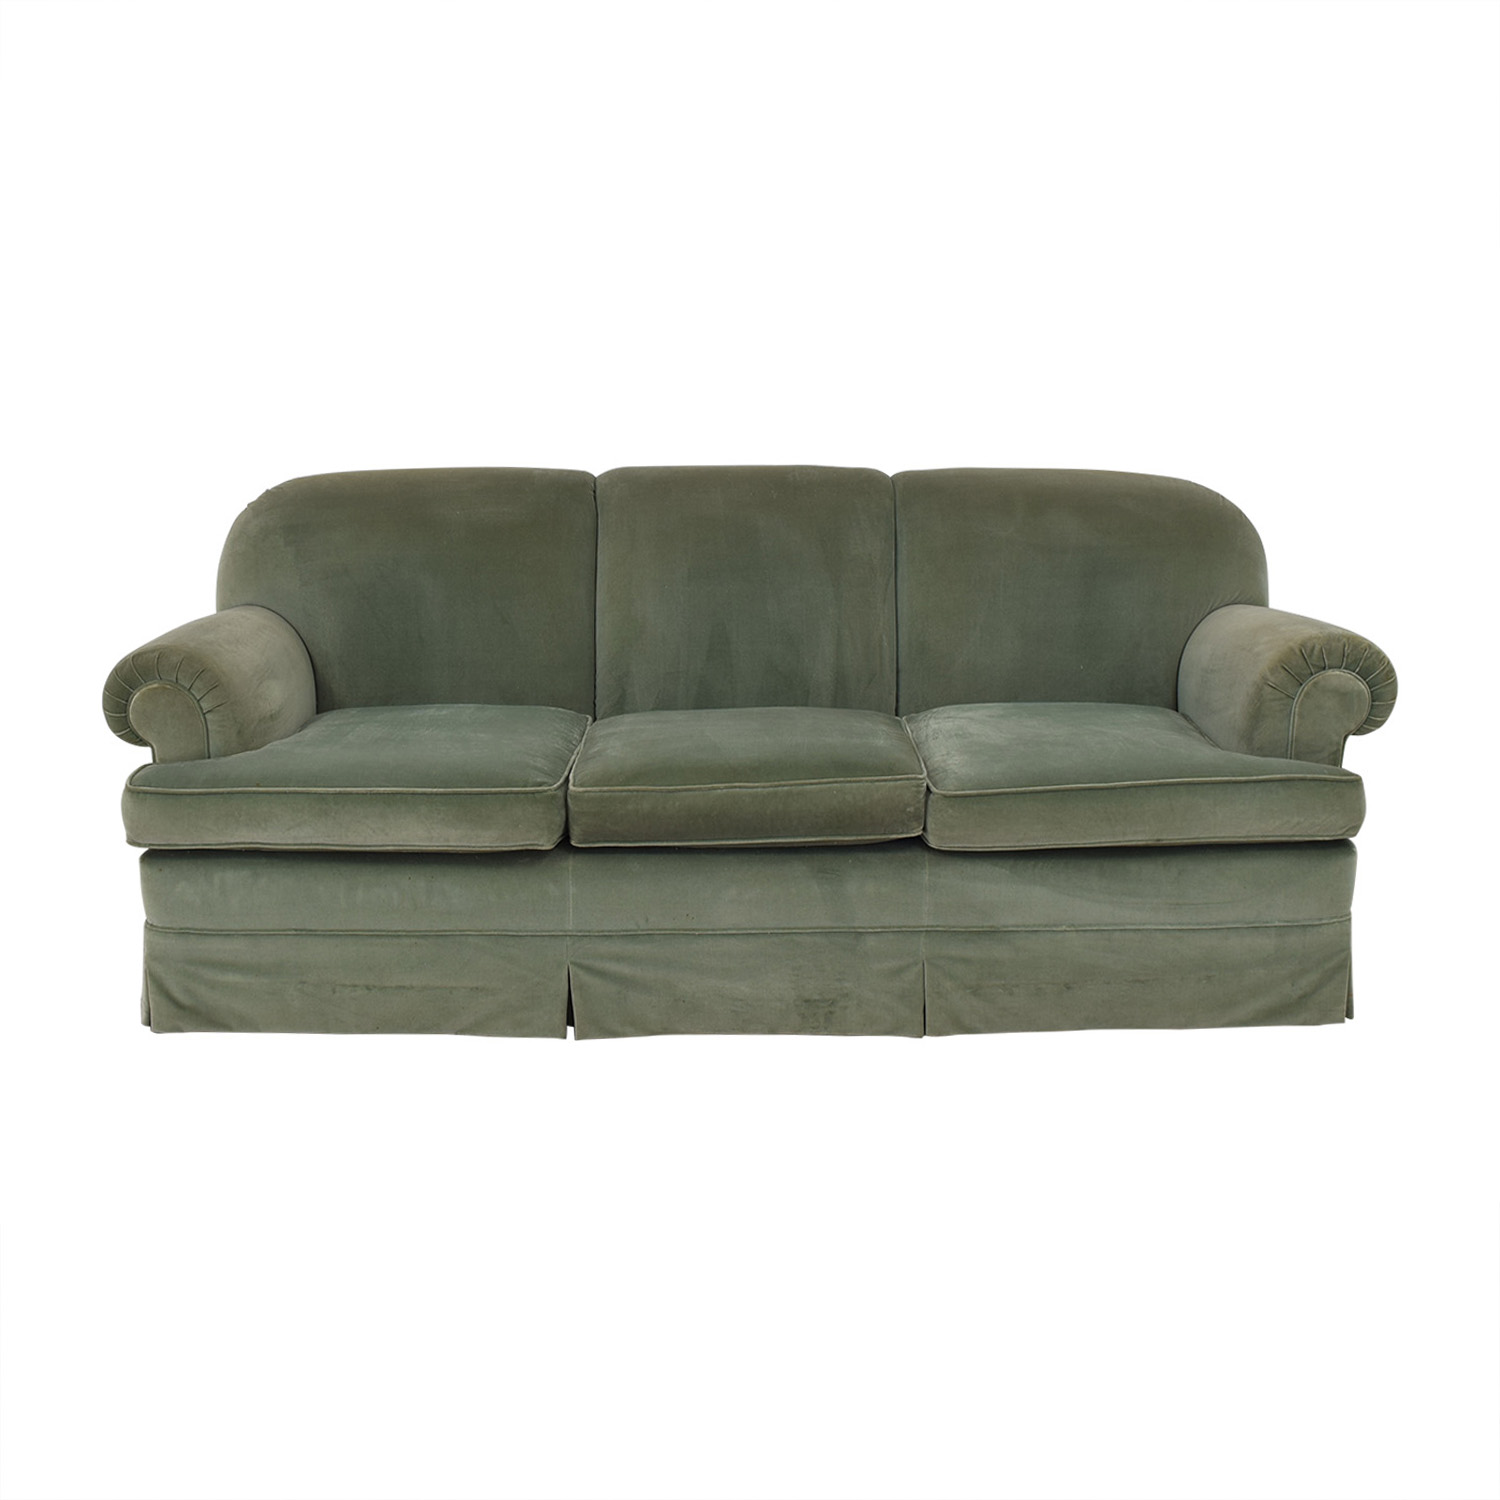 buy  Vintage Green Three-Cushion Sofa online